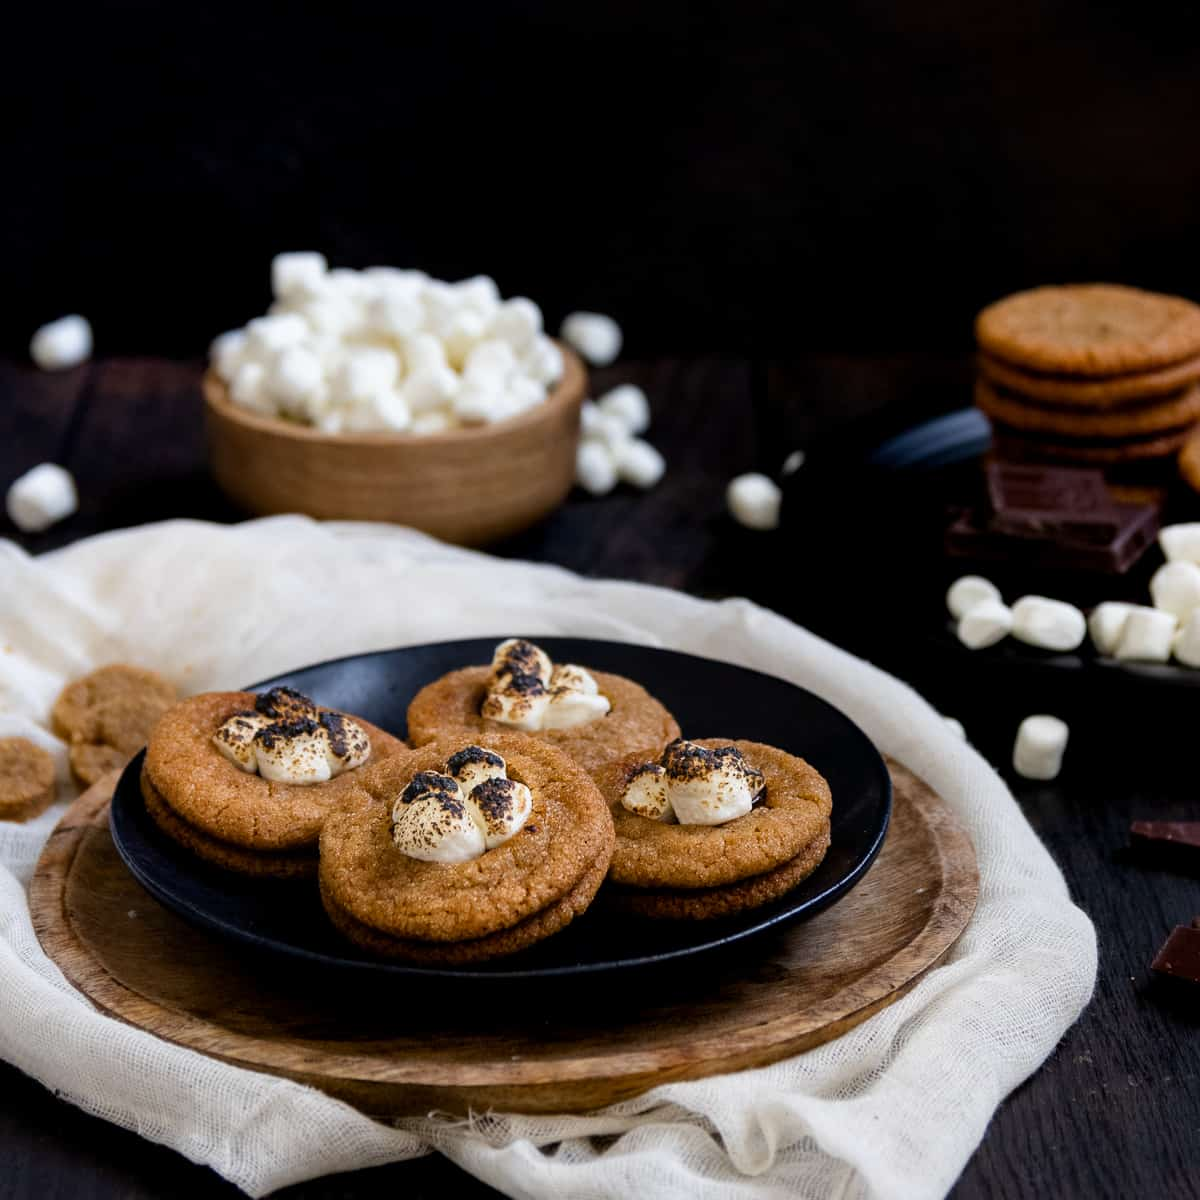 These sandwich s'mores cookies are among the best cookies of all time! Soft graham inspired cookies sandwiching rich chocolate ganache and topped with real roasted marshmallows. Definitely summer's perfect cookie. * GoodieGodmother.com